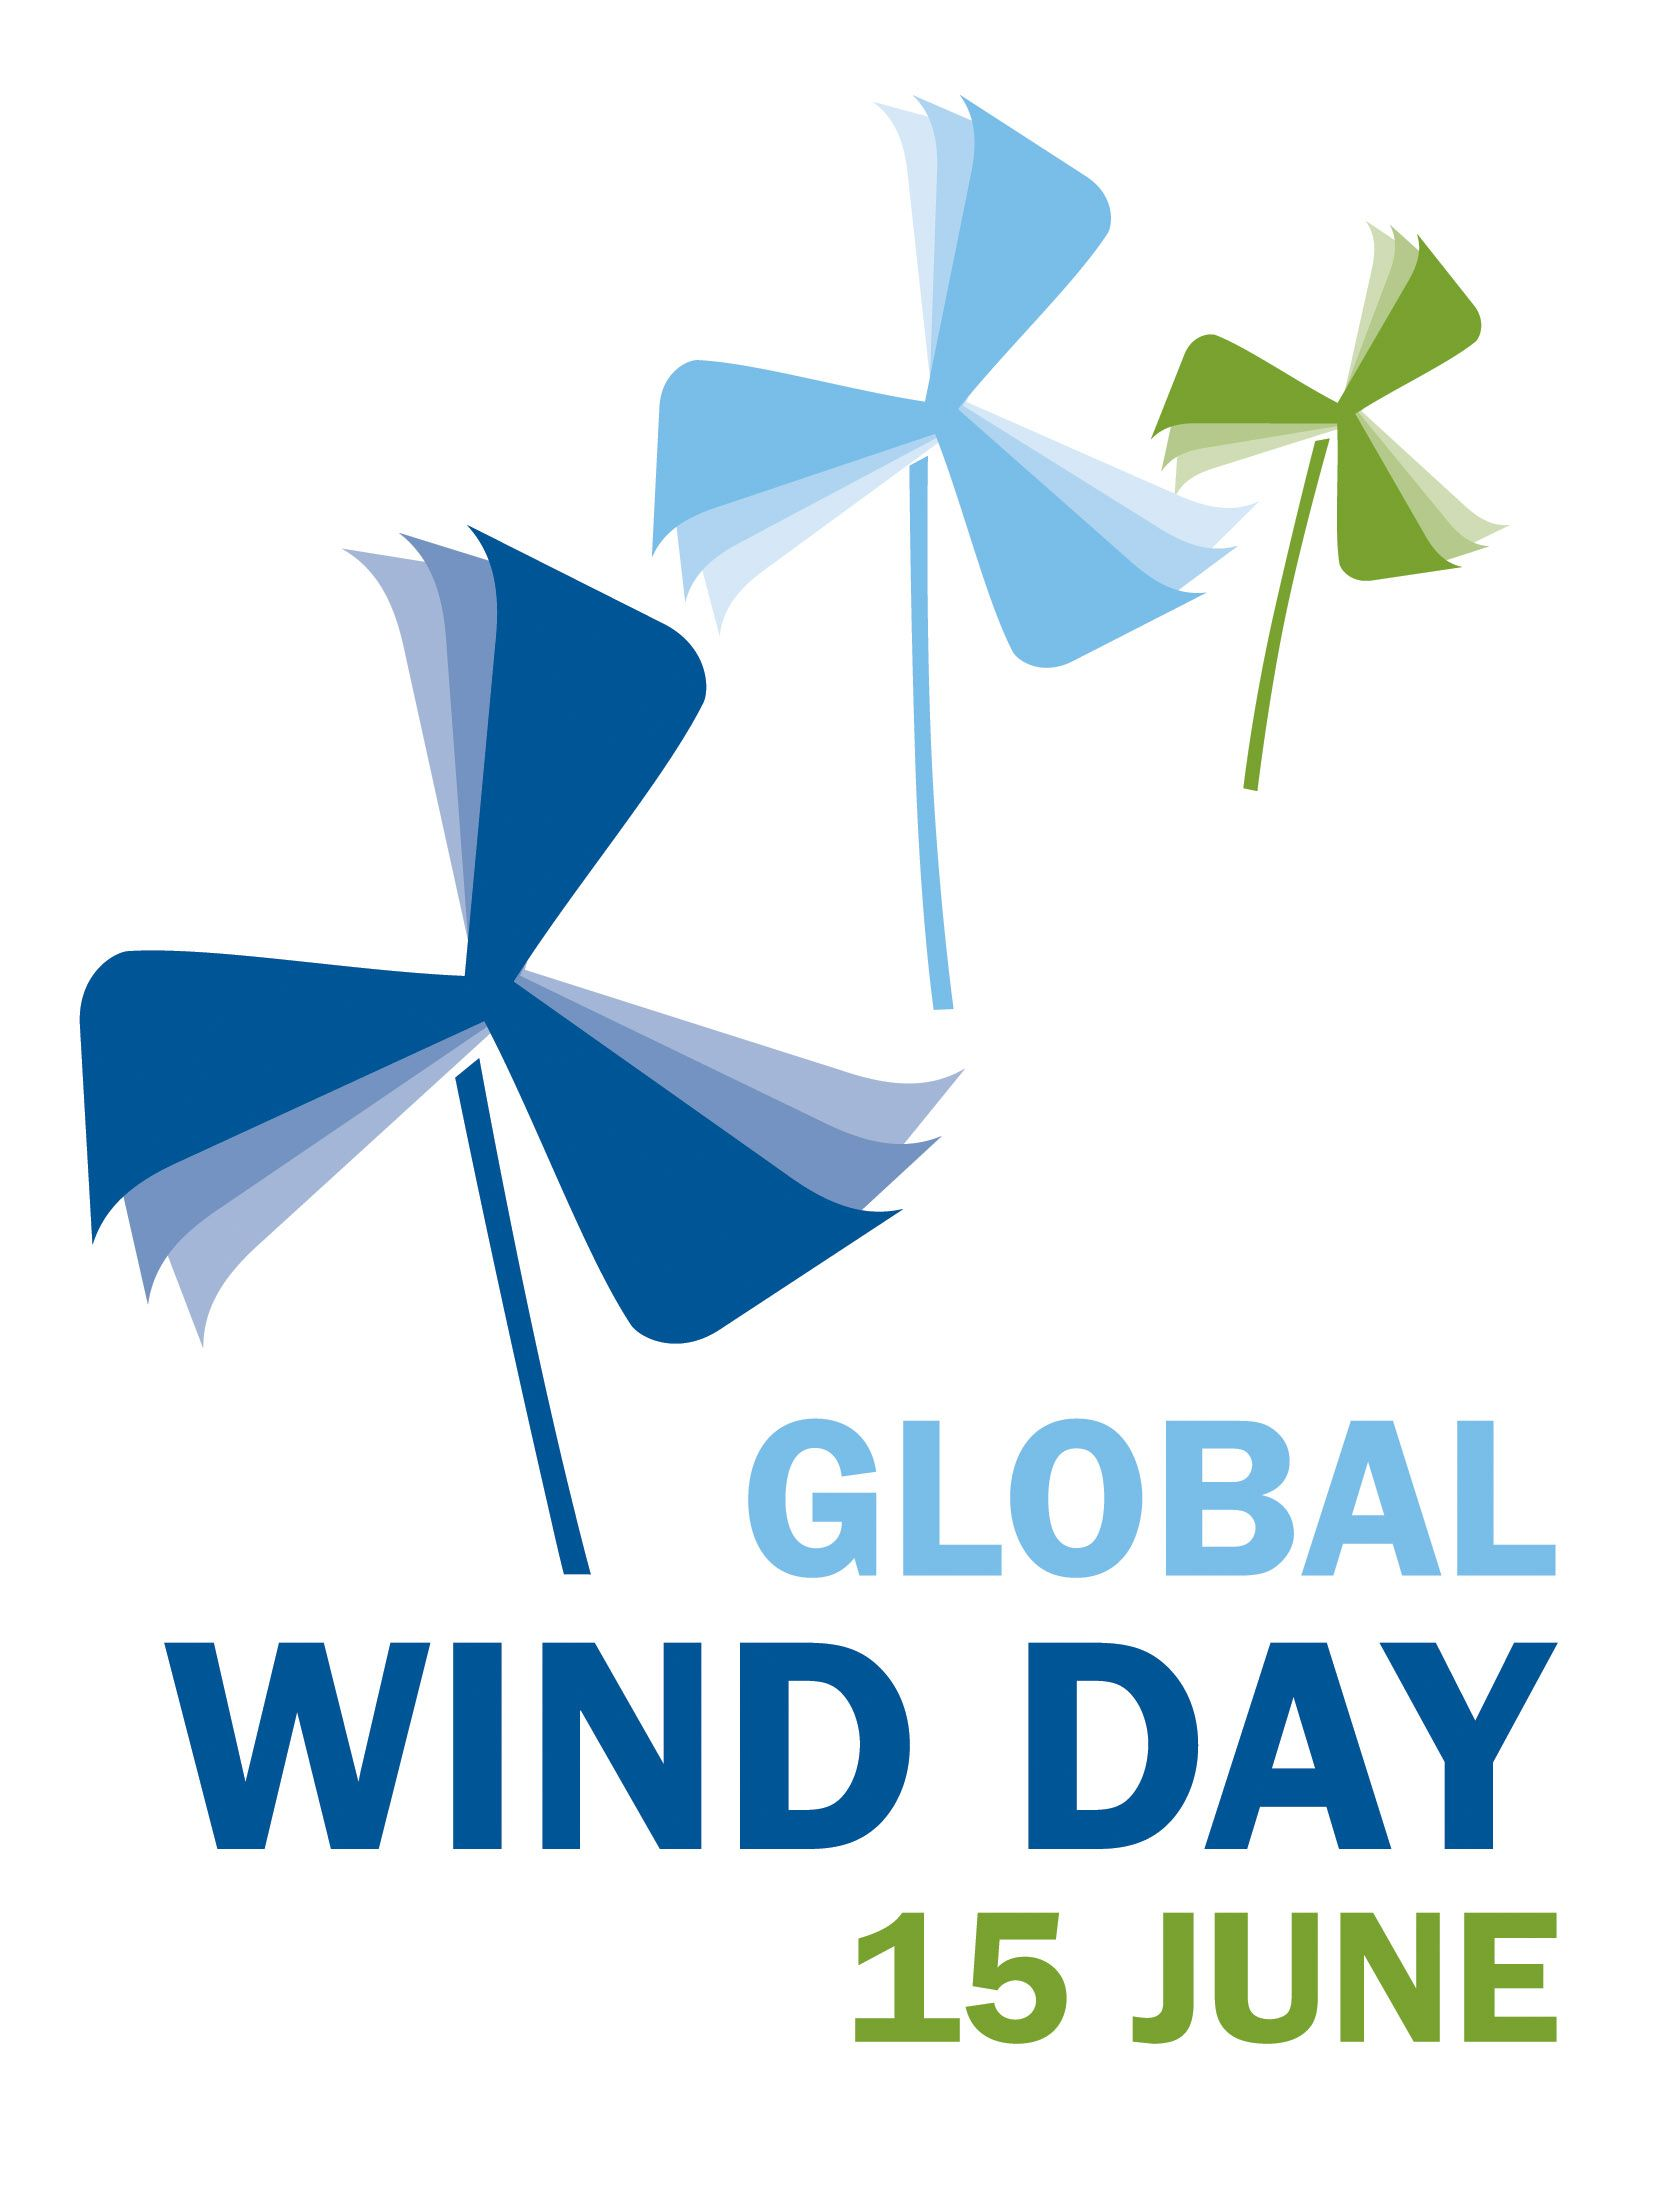 Annual event to inform the world about the power of wind global annual event to inform the world about the power of wind kristyandbryce Gallery